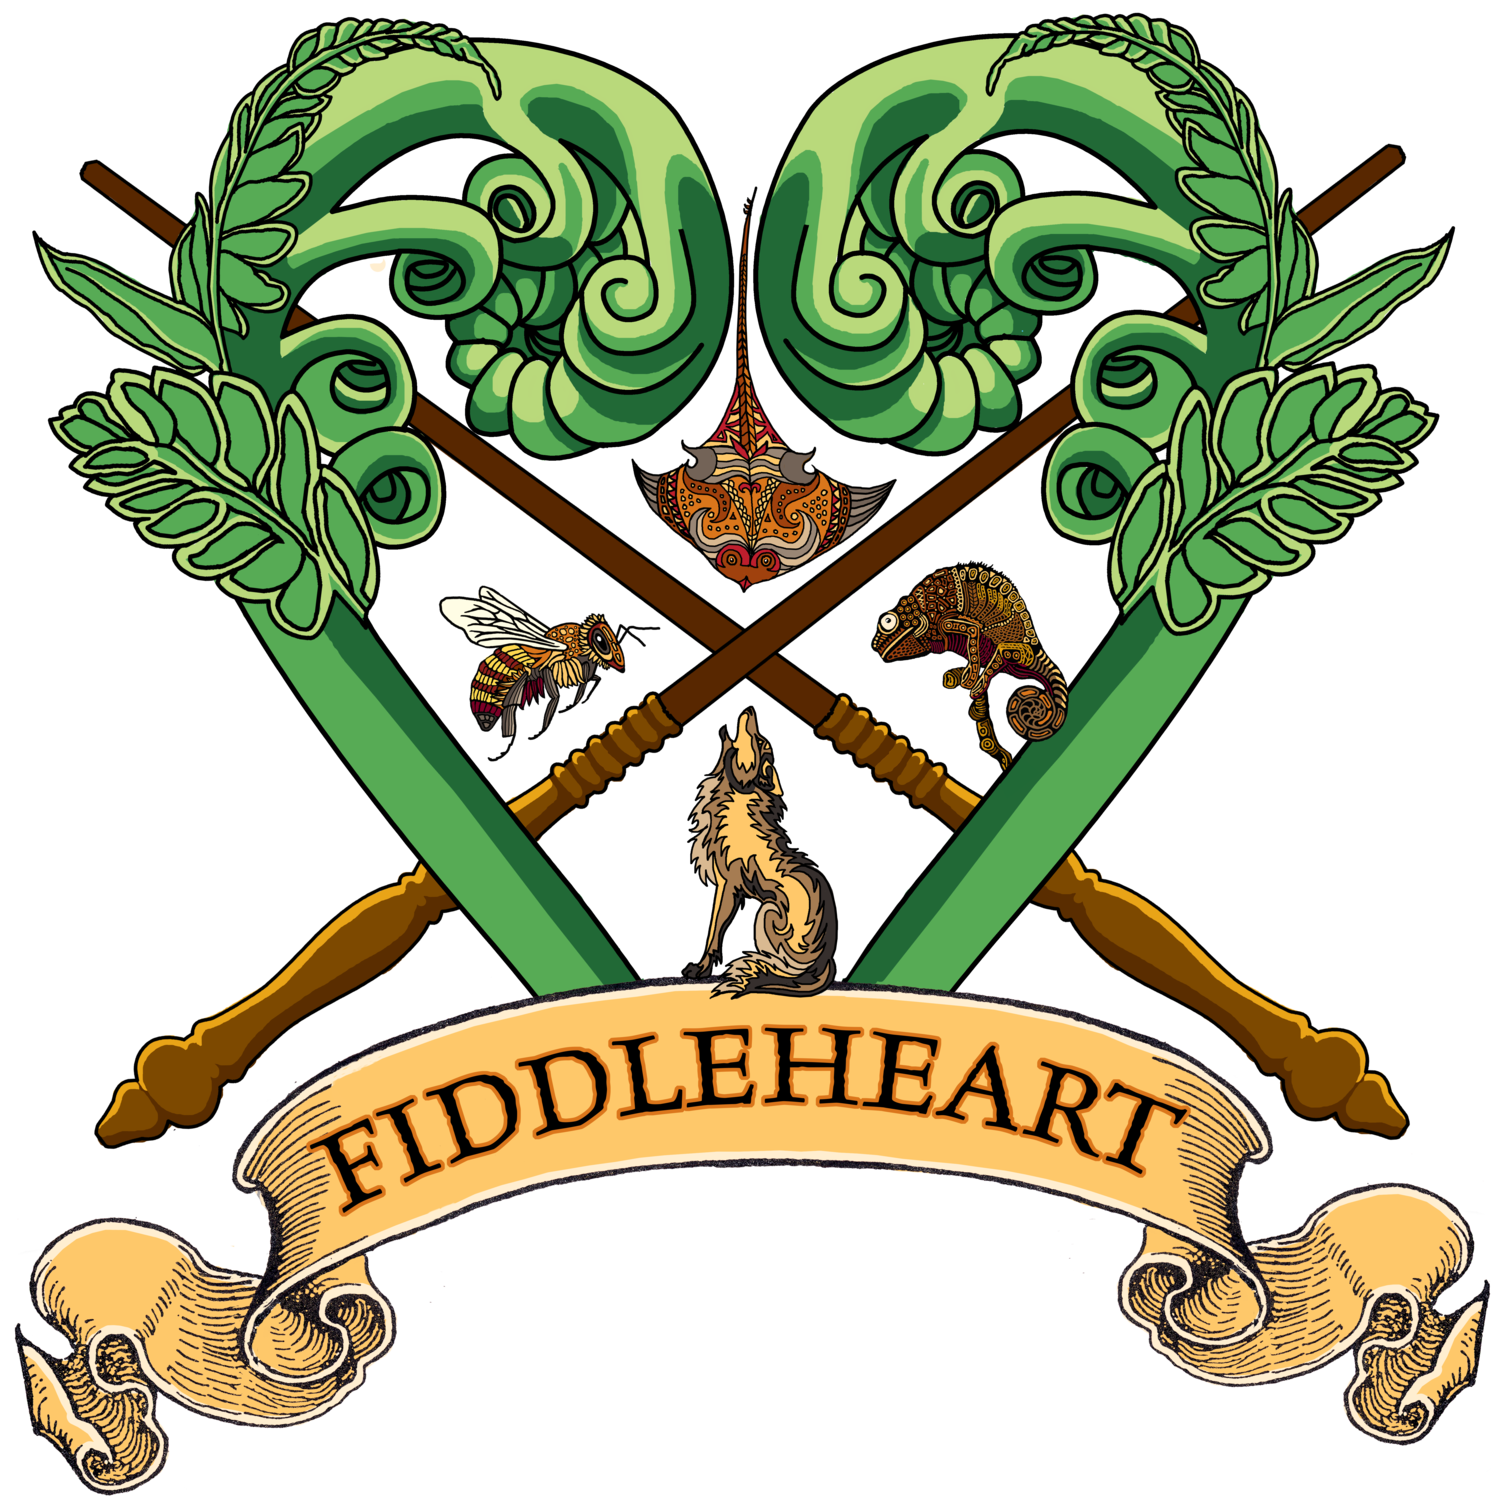 Fiddleheart